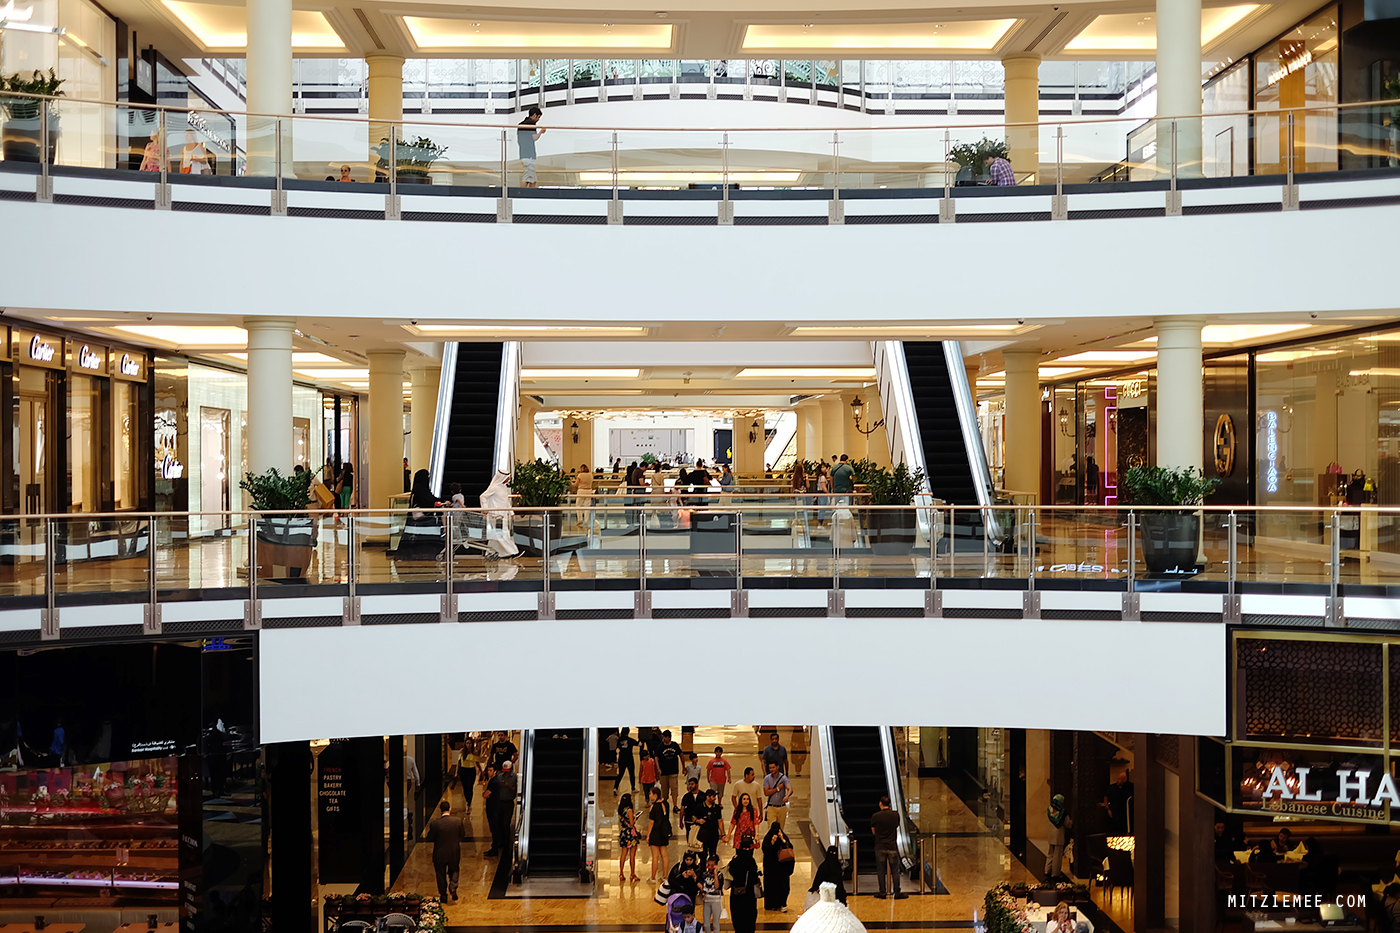 Dubai shopping malls my top picks dubai guide mitzie mee - Carrefour head office uae ...